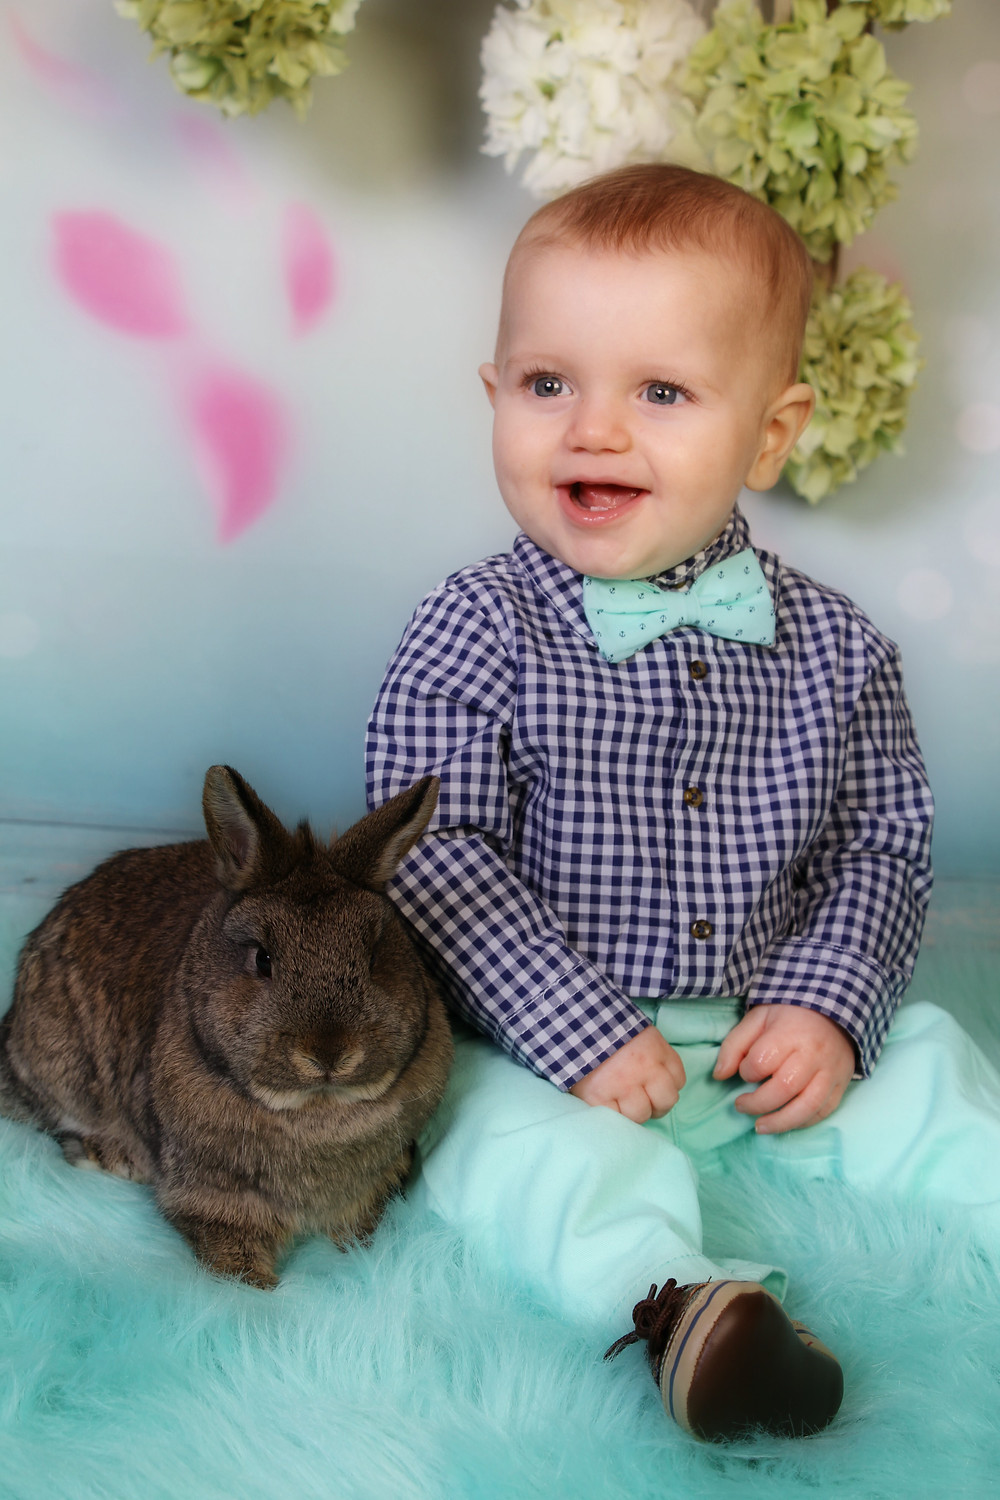 Easter Bunny sessions are now avaiable, come see the excitement and let your little ones snuggle and play with our bunnies Peter and Polly. These moments are perfect for creating memories you will treasure a lifetime.